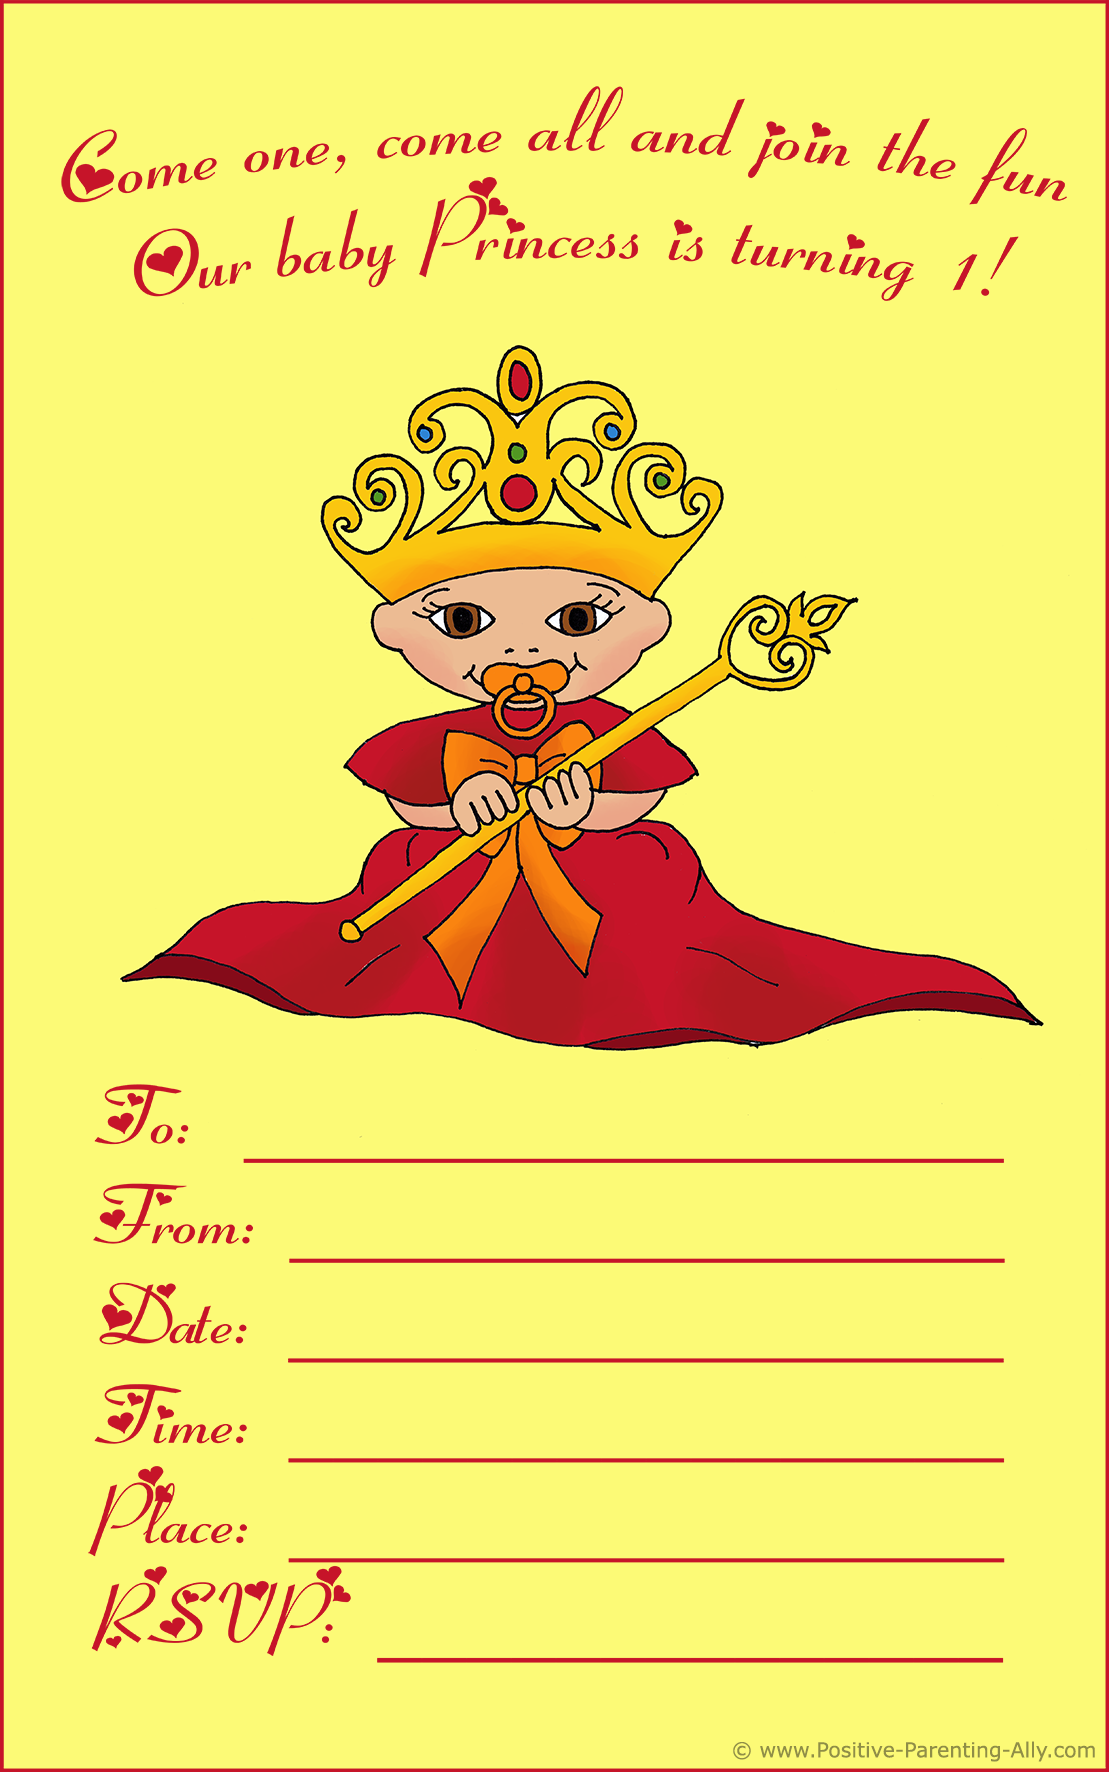 Printable birthday invite featuring a baby princess wearing a queen's robe and crown.